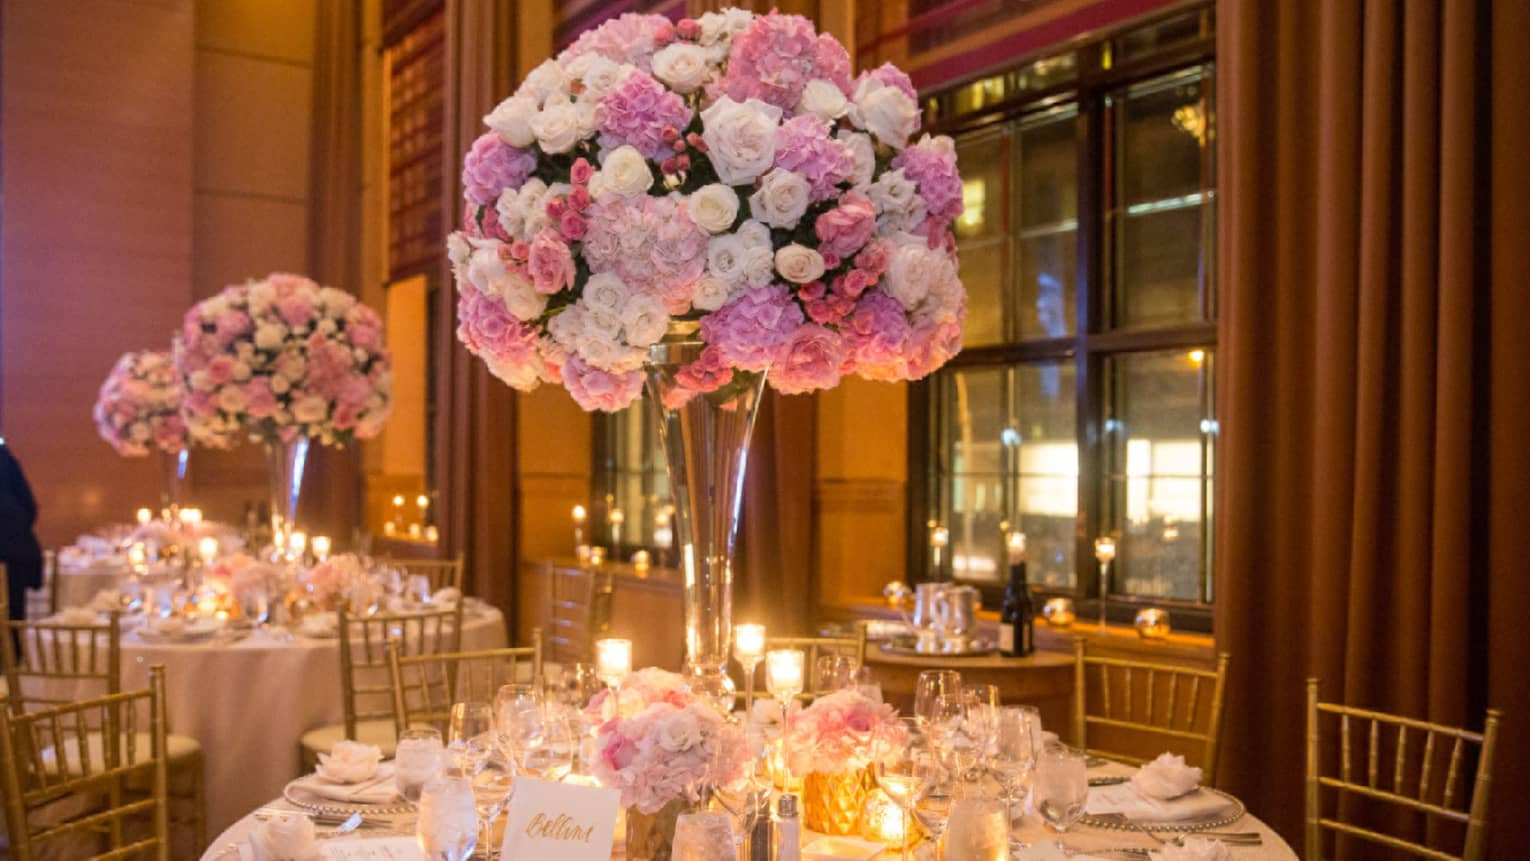 Wedding banquet dining tables with glowing candles, pink rose bouquets in tall vases